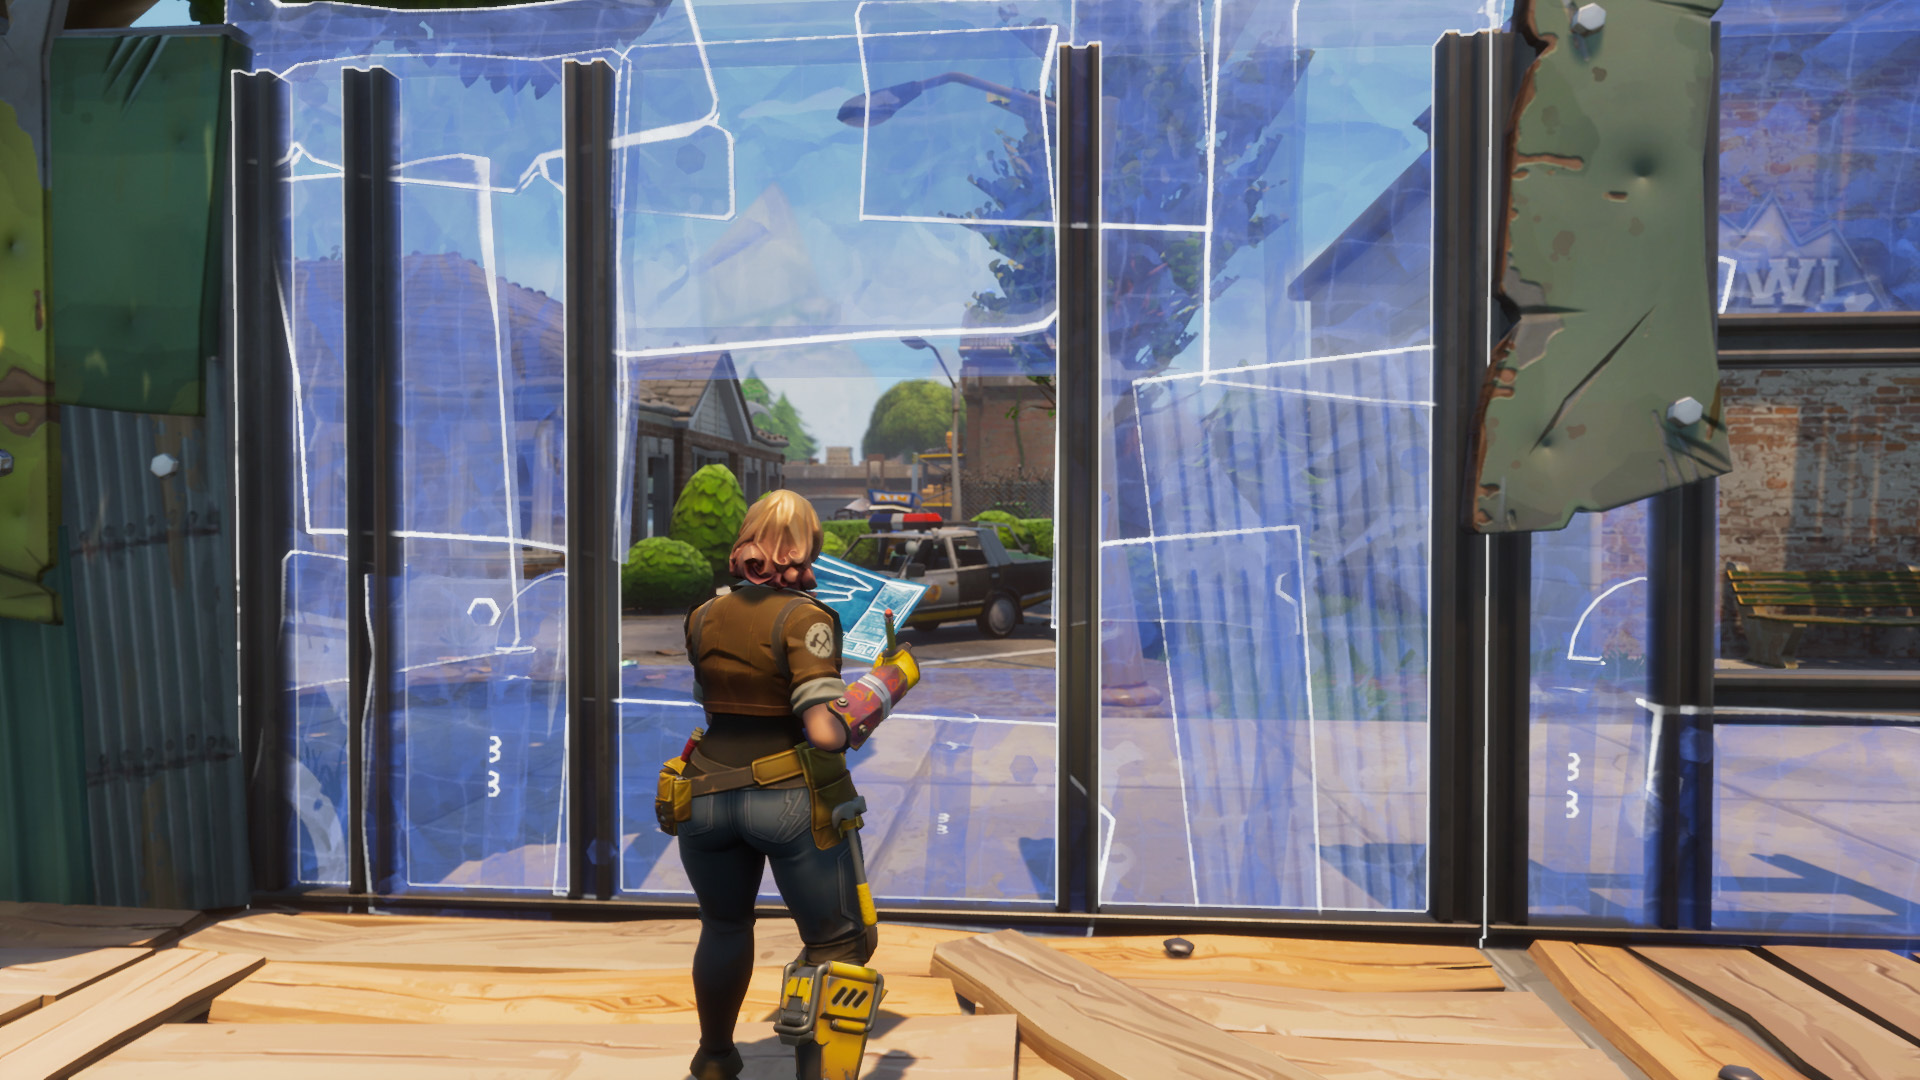 Fortnite Founder S Packs Now Available Gain Early Access